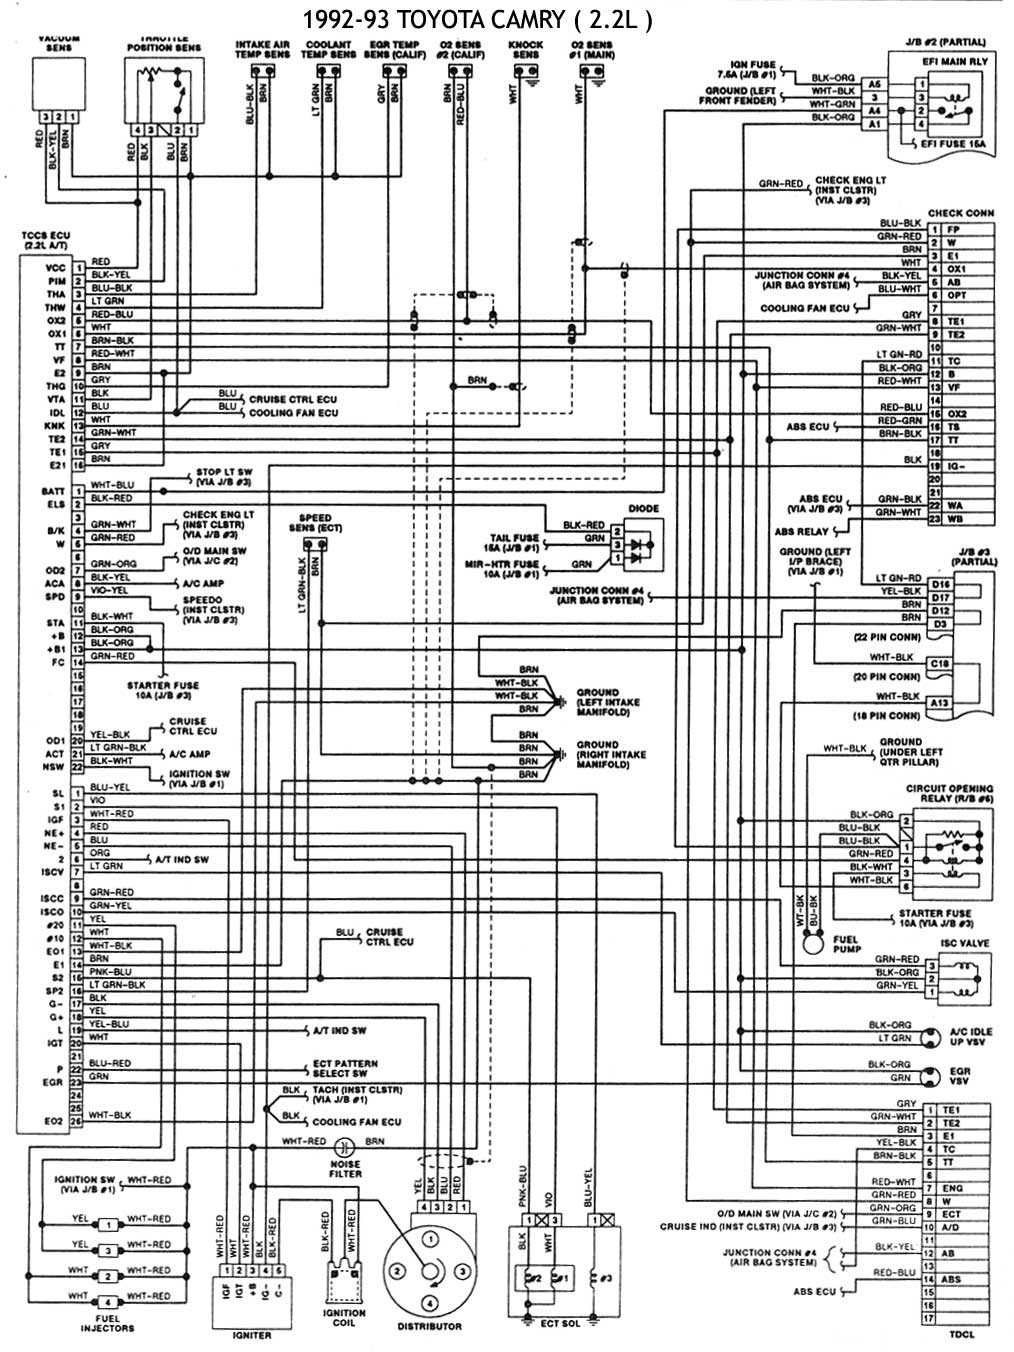 93 toyota corolla engine diagram get free image about wiring diagram